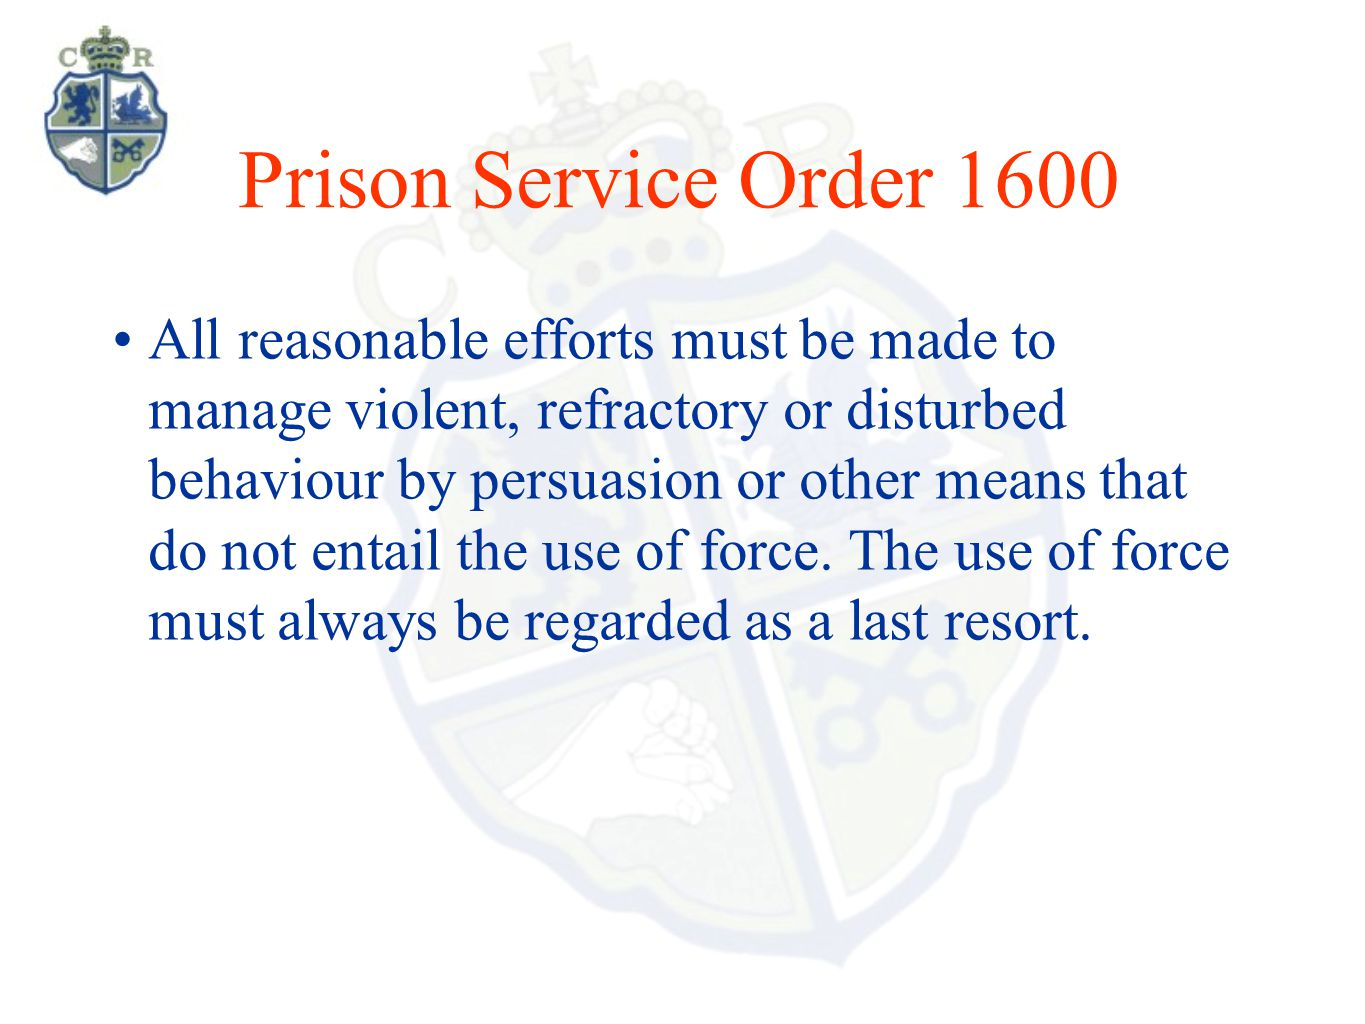 Prison Service Order 1600 All reasonable efforts must be made to manage violent, refractory or disturbed behaviour by persuasion or other means that do not entail the use of force.